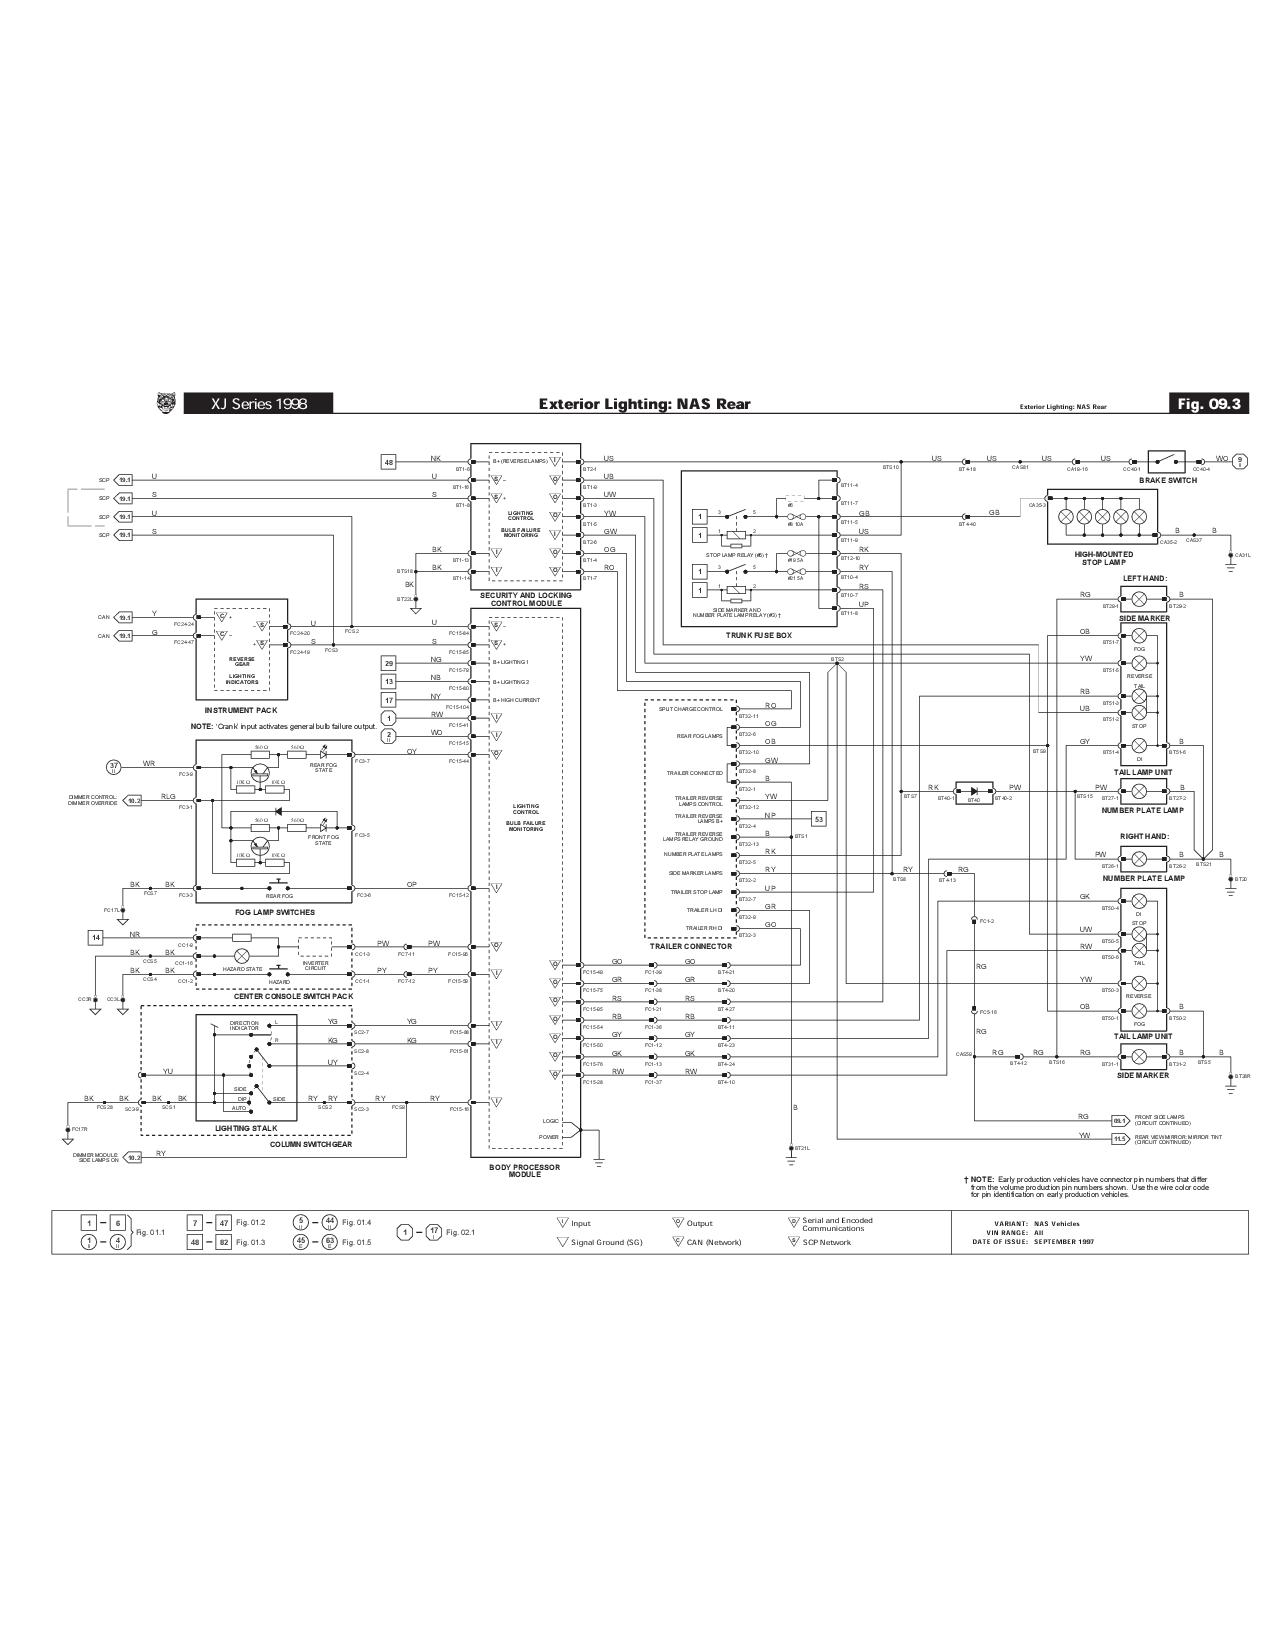 2003 Suzuki Xl7 Fuse Box Diagram Wiring Diagram Midoriva